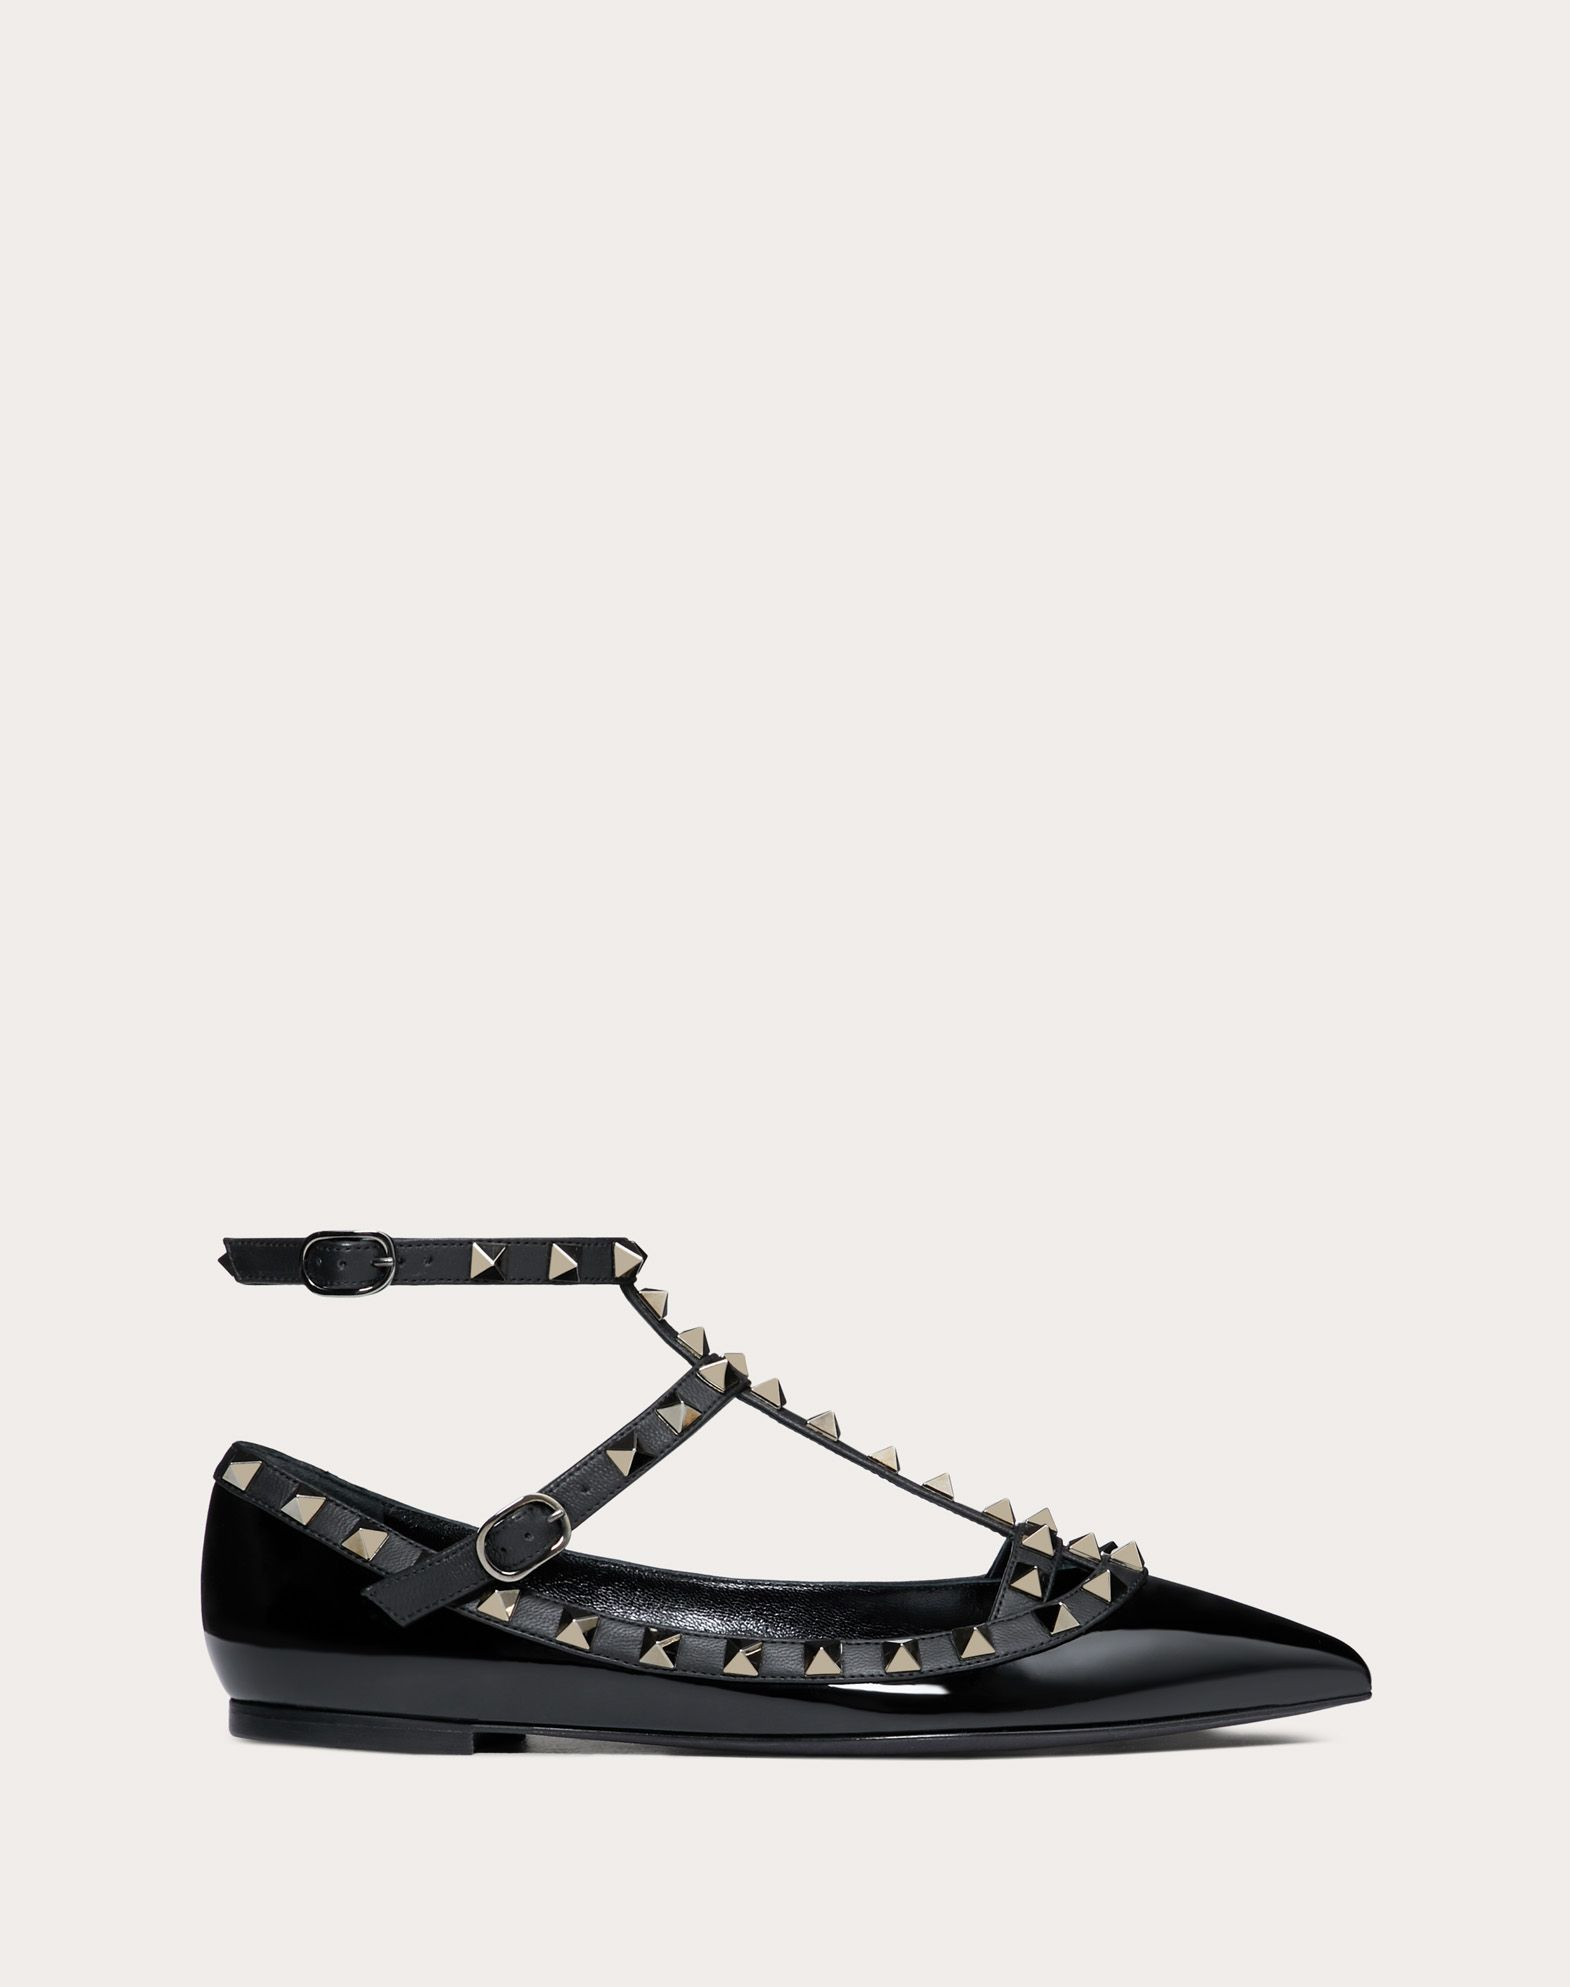 VALENTINO Studs Varnished effect Leather Solid color Buckle Leather sole  Narrow toeline 11005805hv